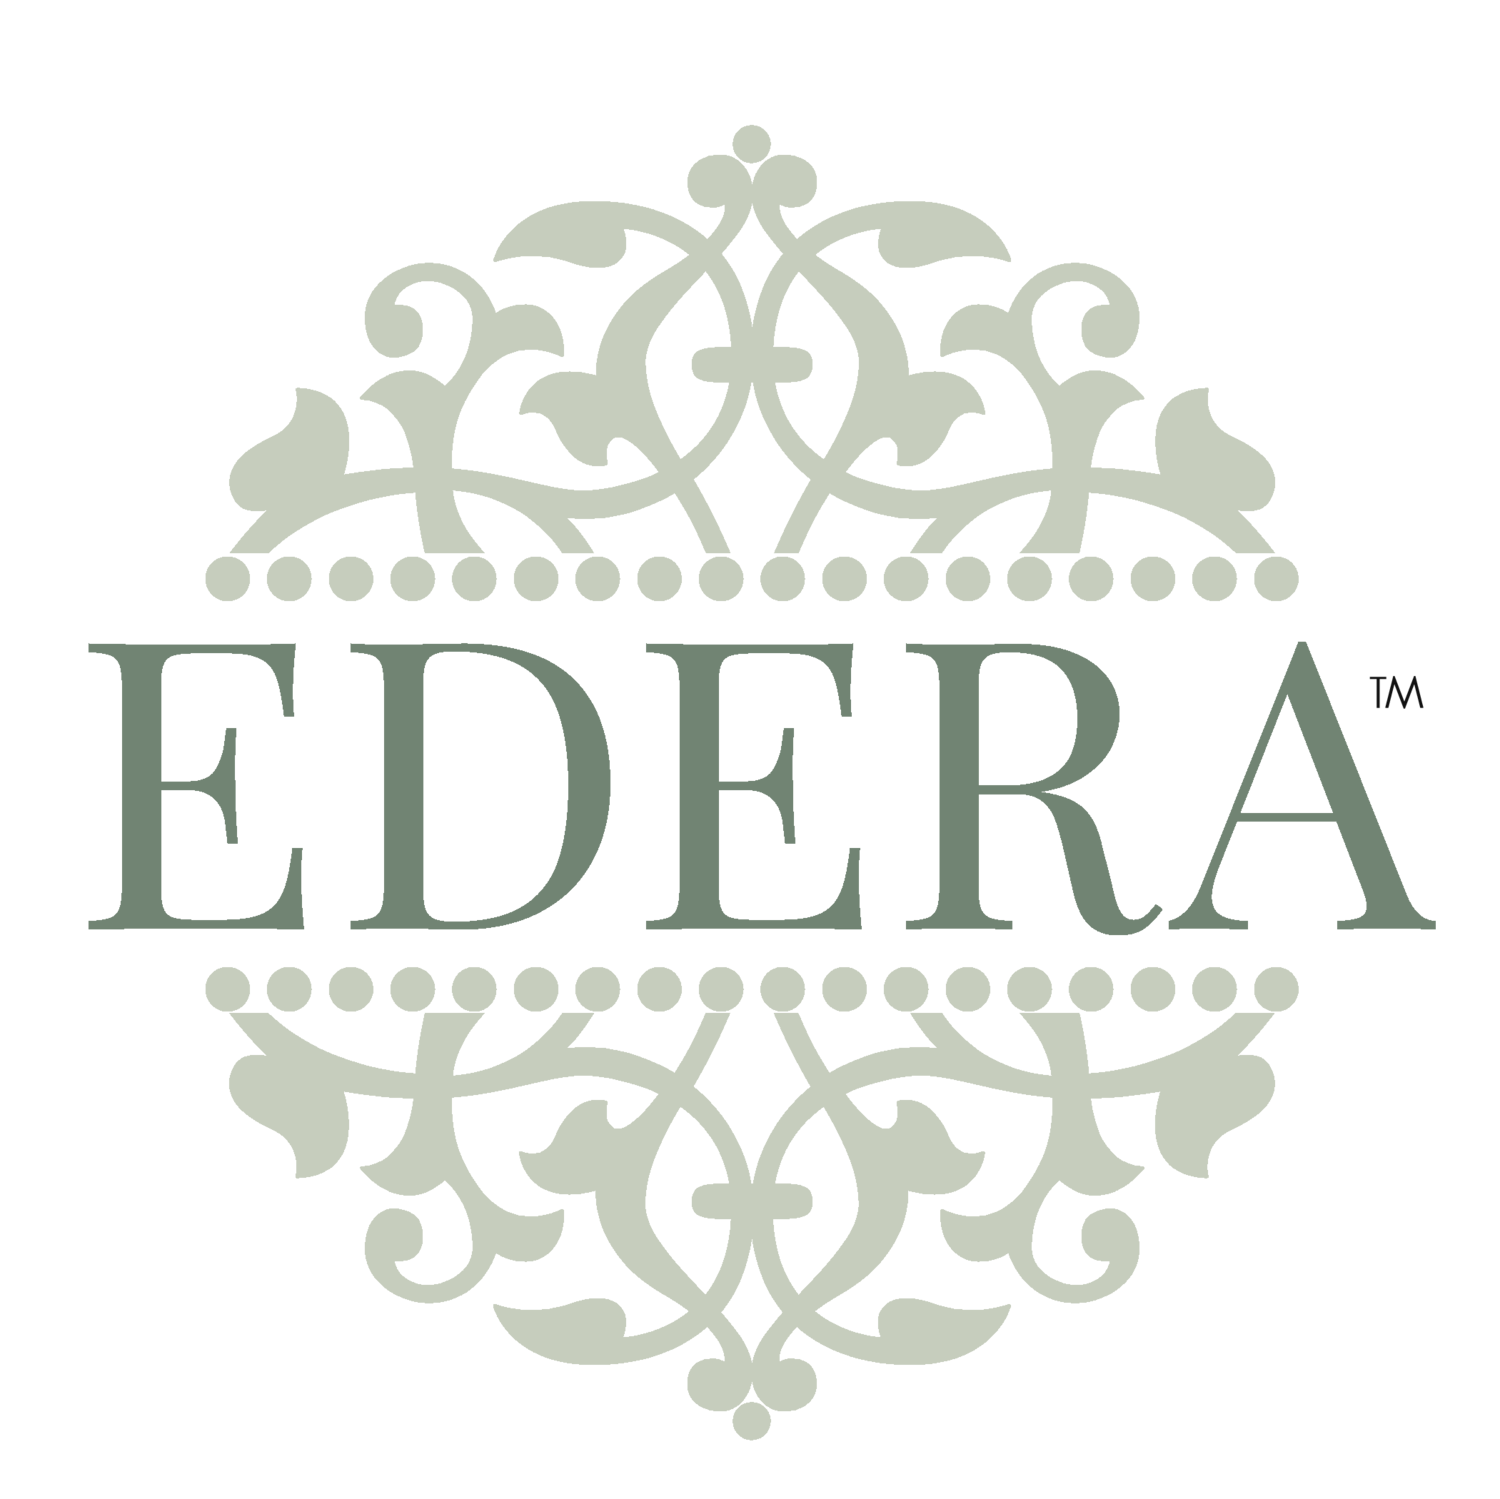 Edera | Couture Lace Bridal Jewelry & Accessories